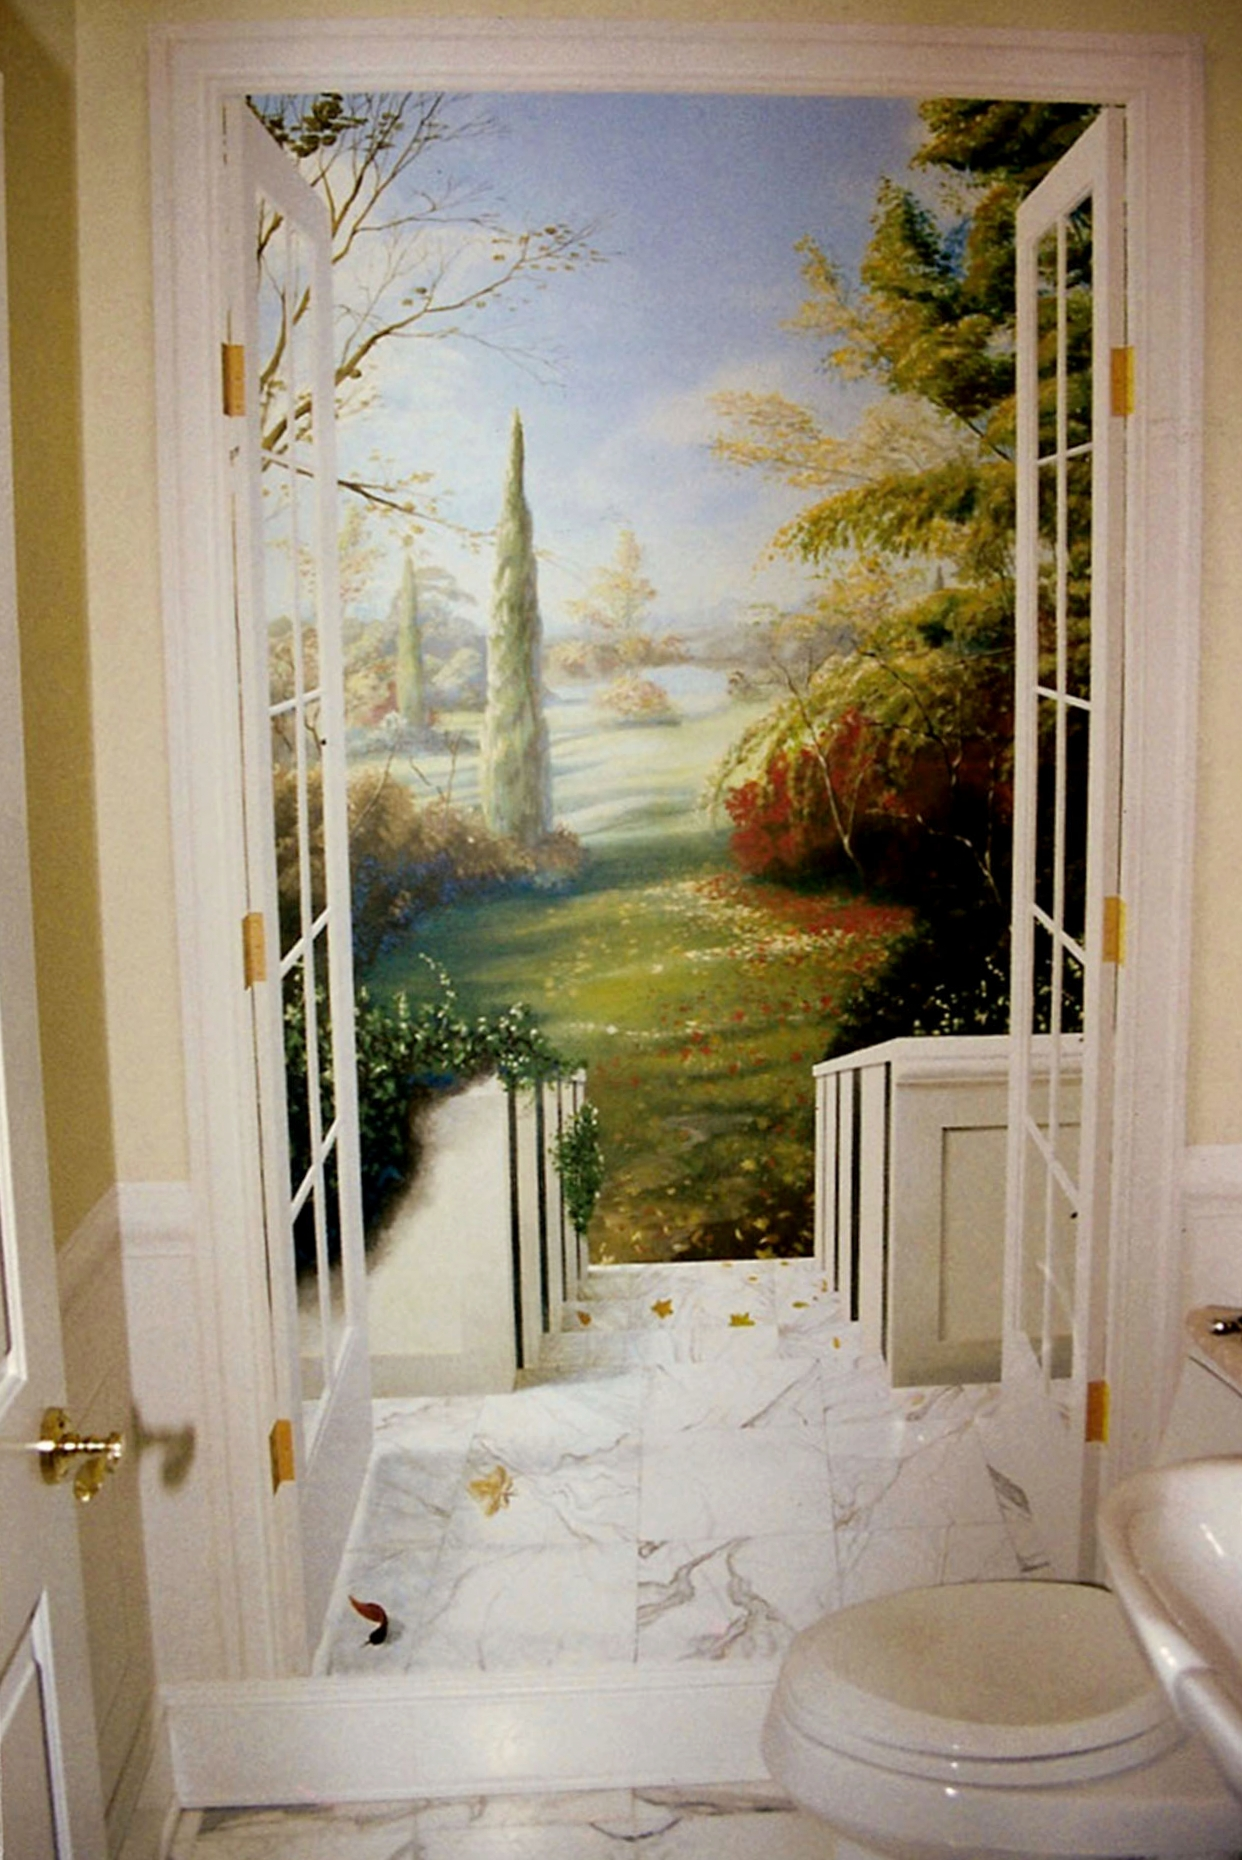 Trompe l'oeil doorway